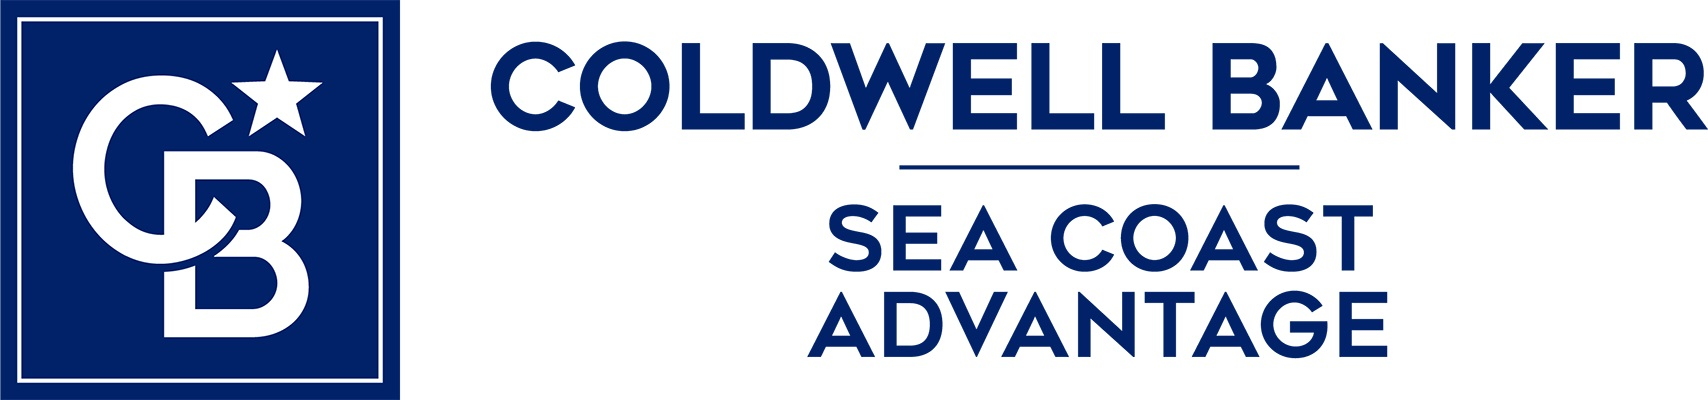 Paul Allsup - Coldwell Banker Sea Coast Advantage Realty Logo